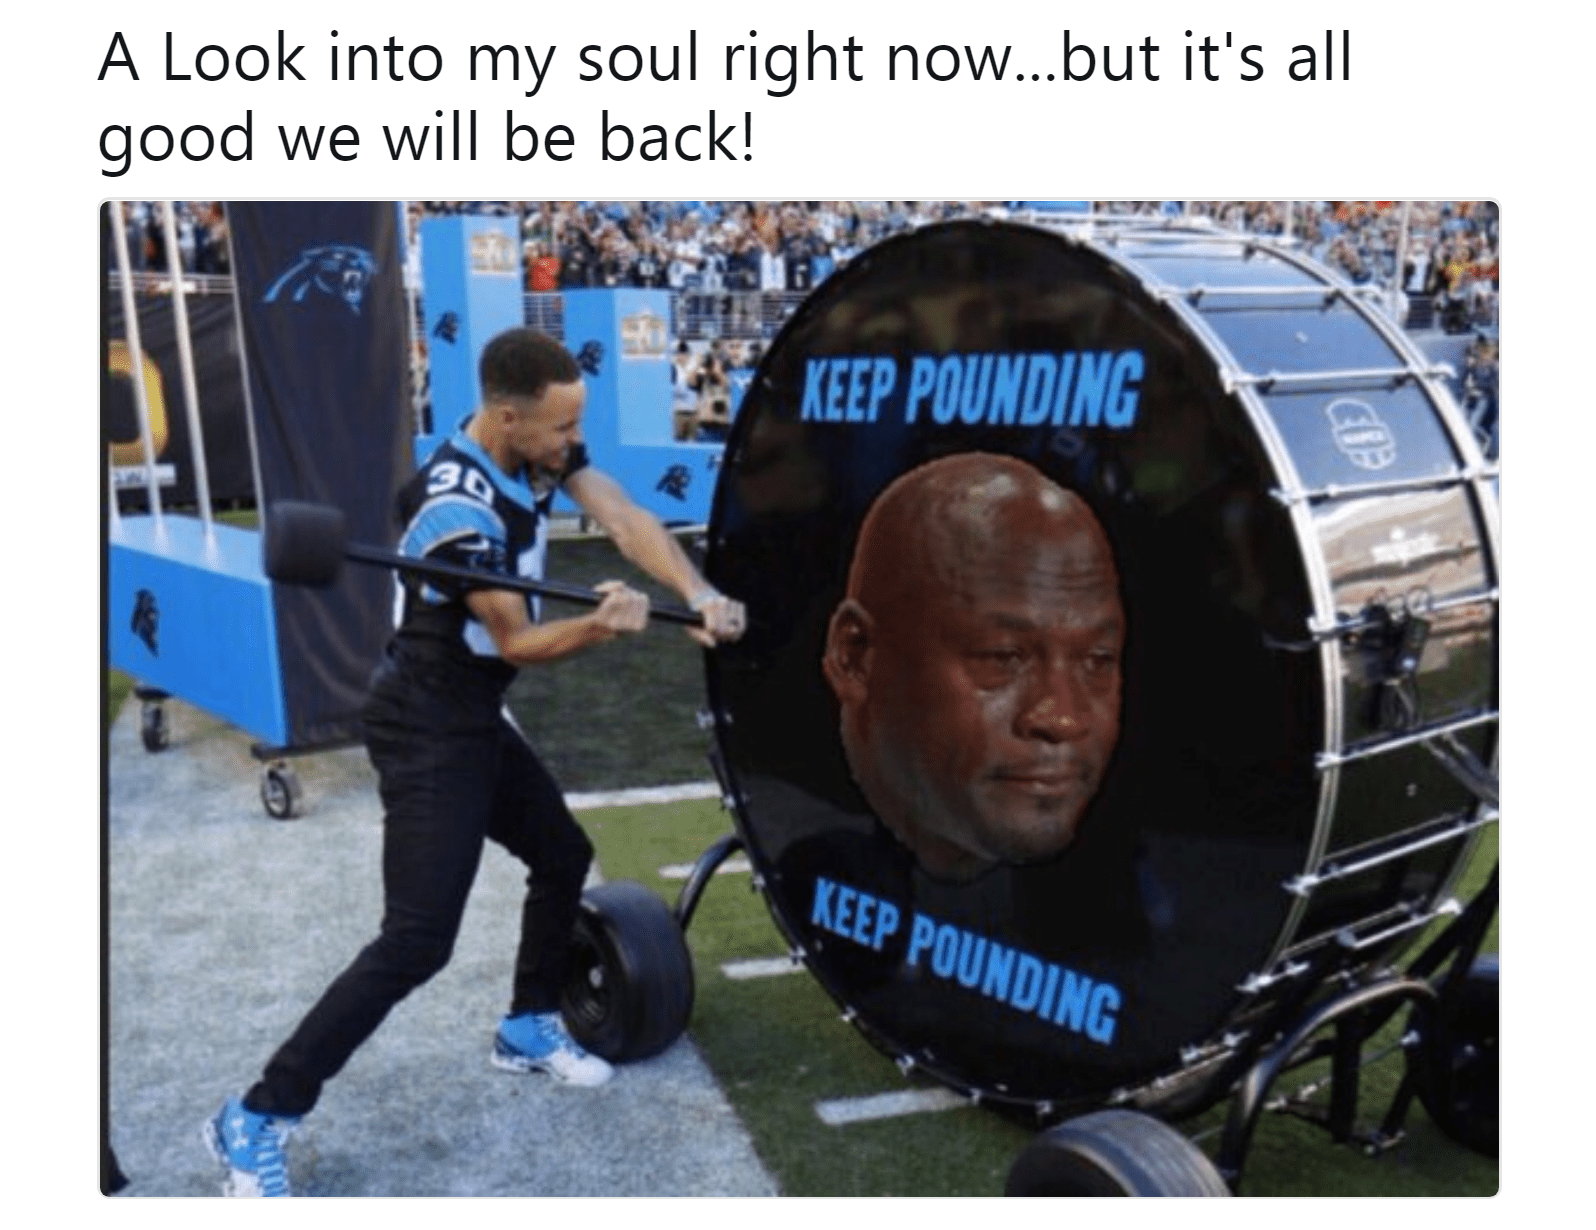 Steph Curry striking a drum with crying Michael Jordan's face on it